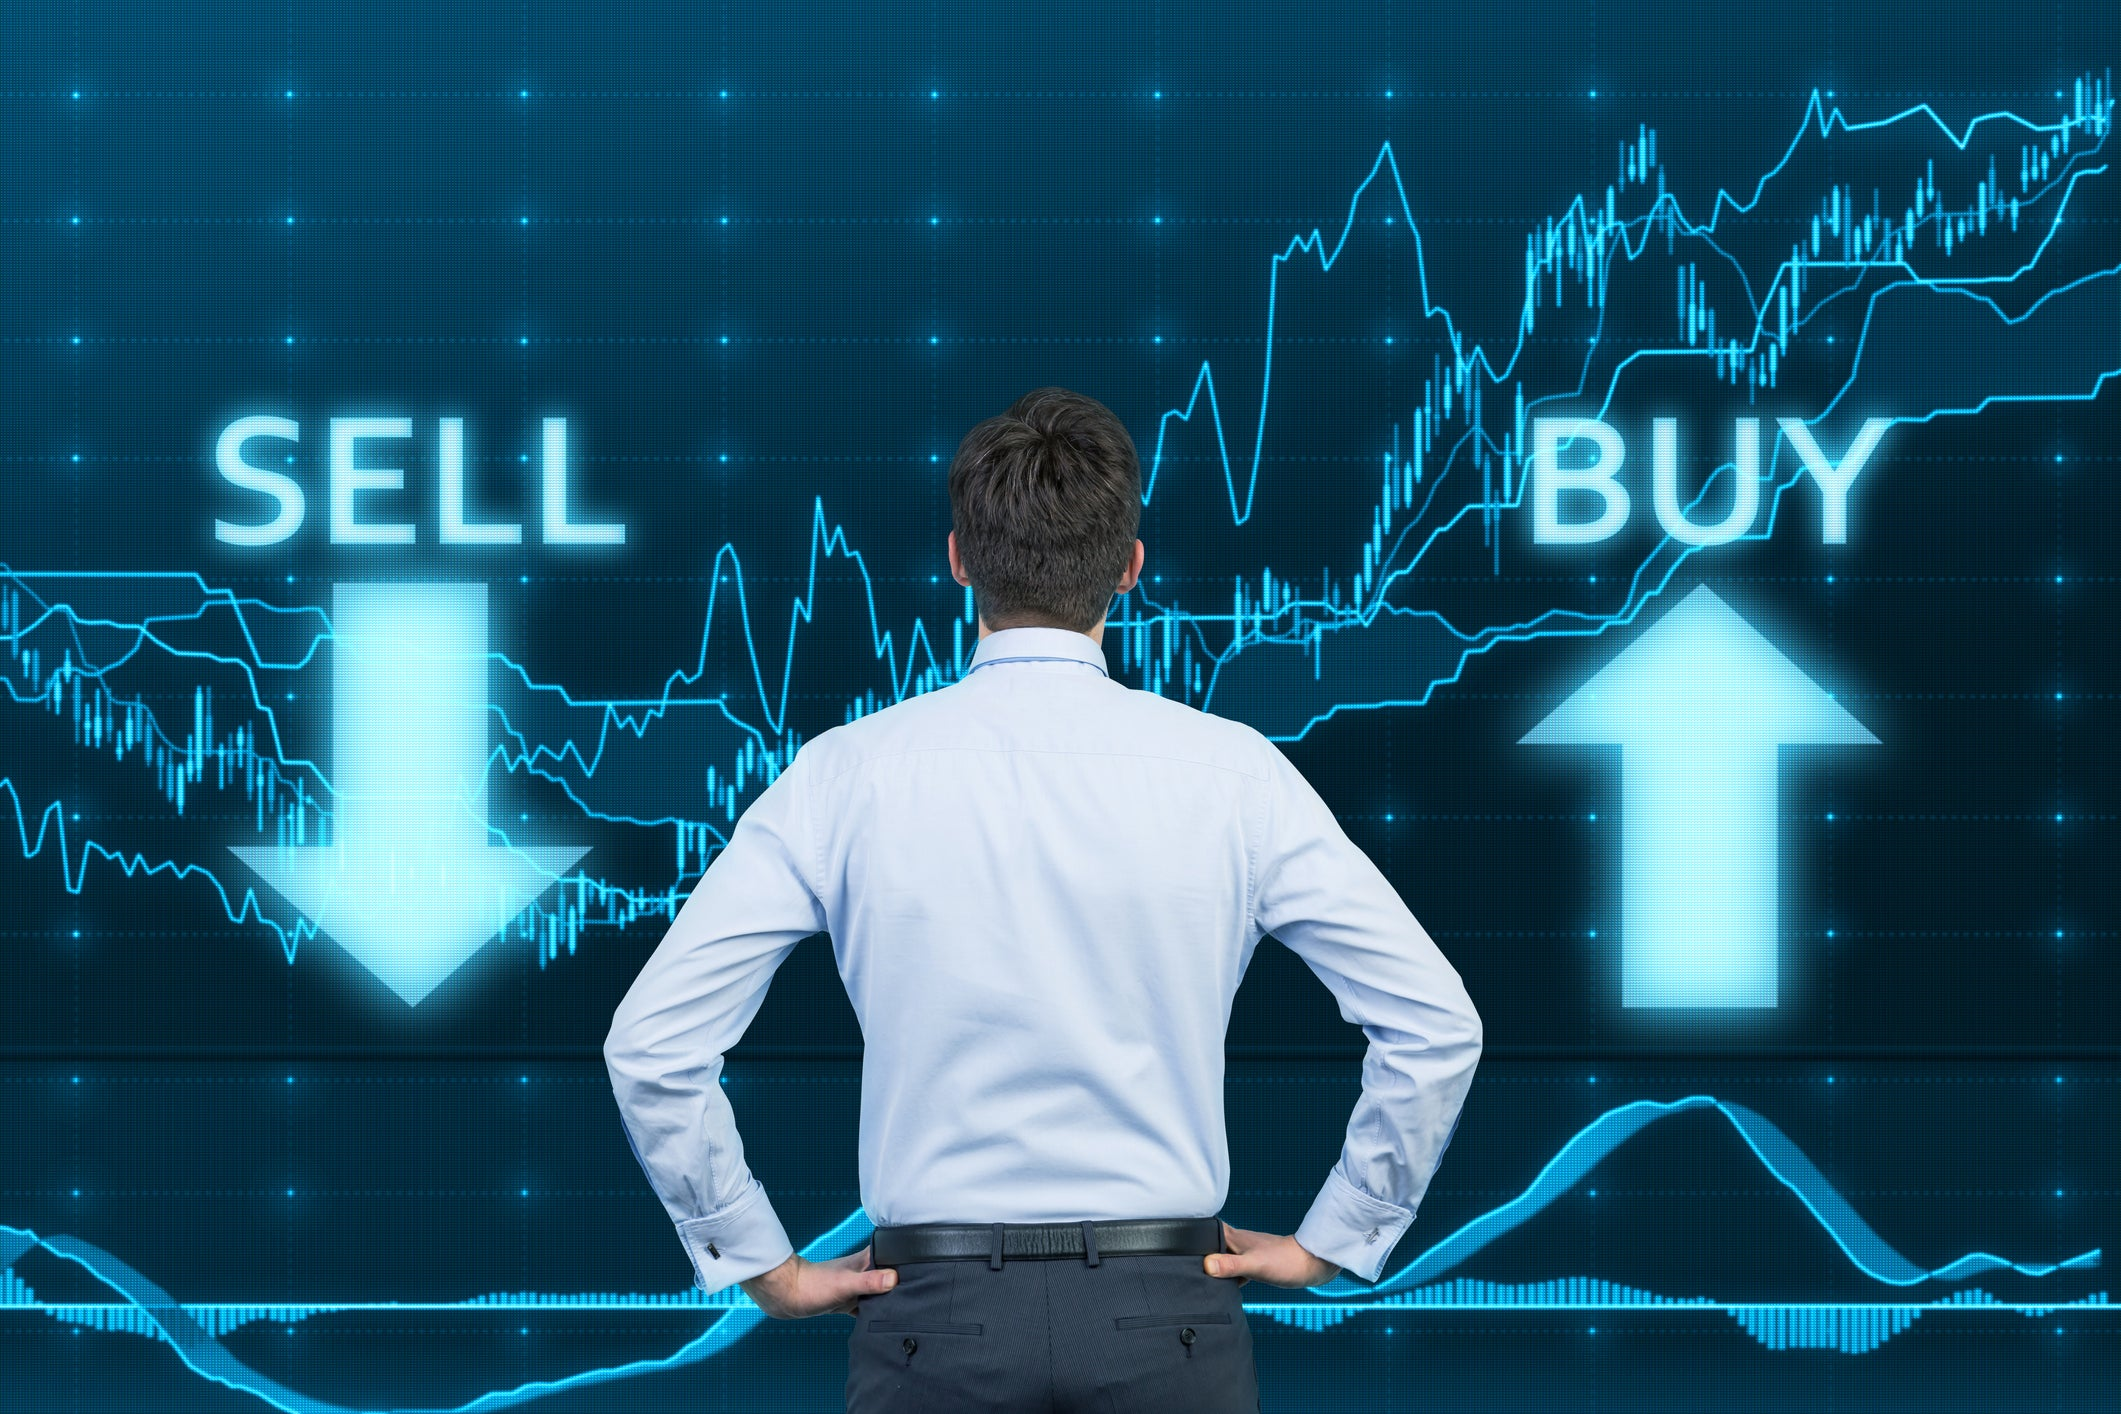 How To Buy A Stock For The First Time The Motley Fool